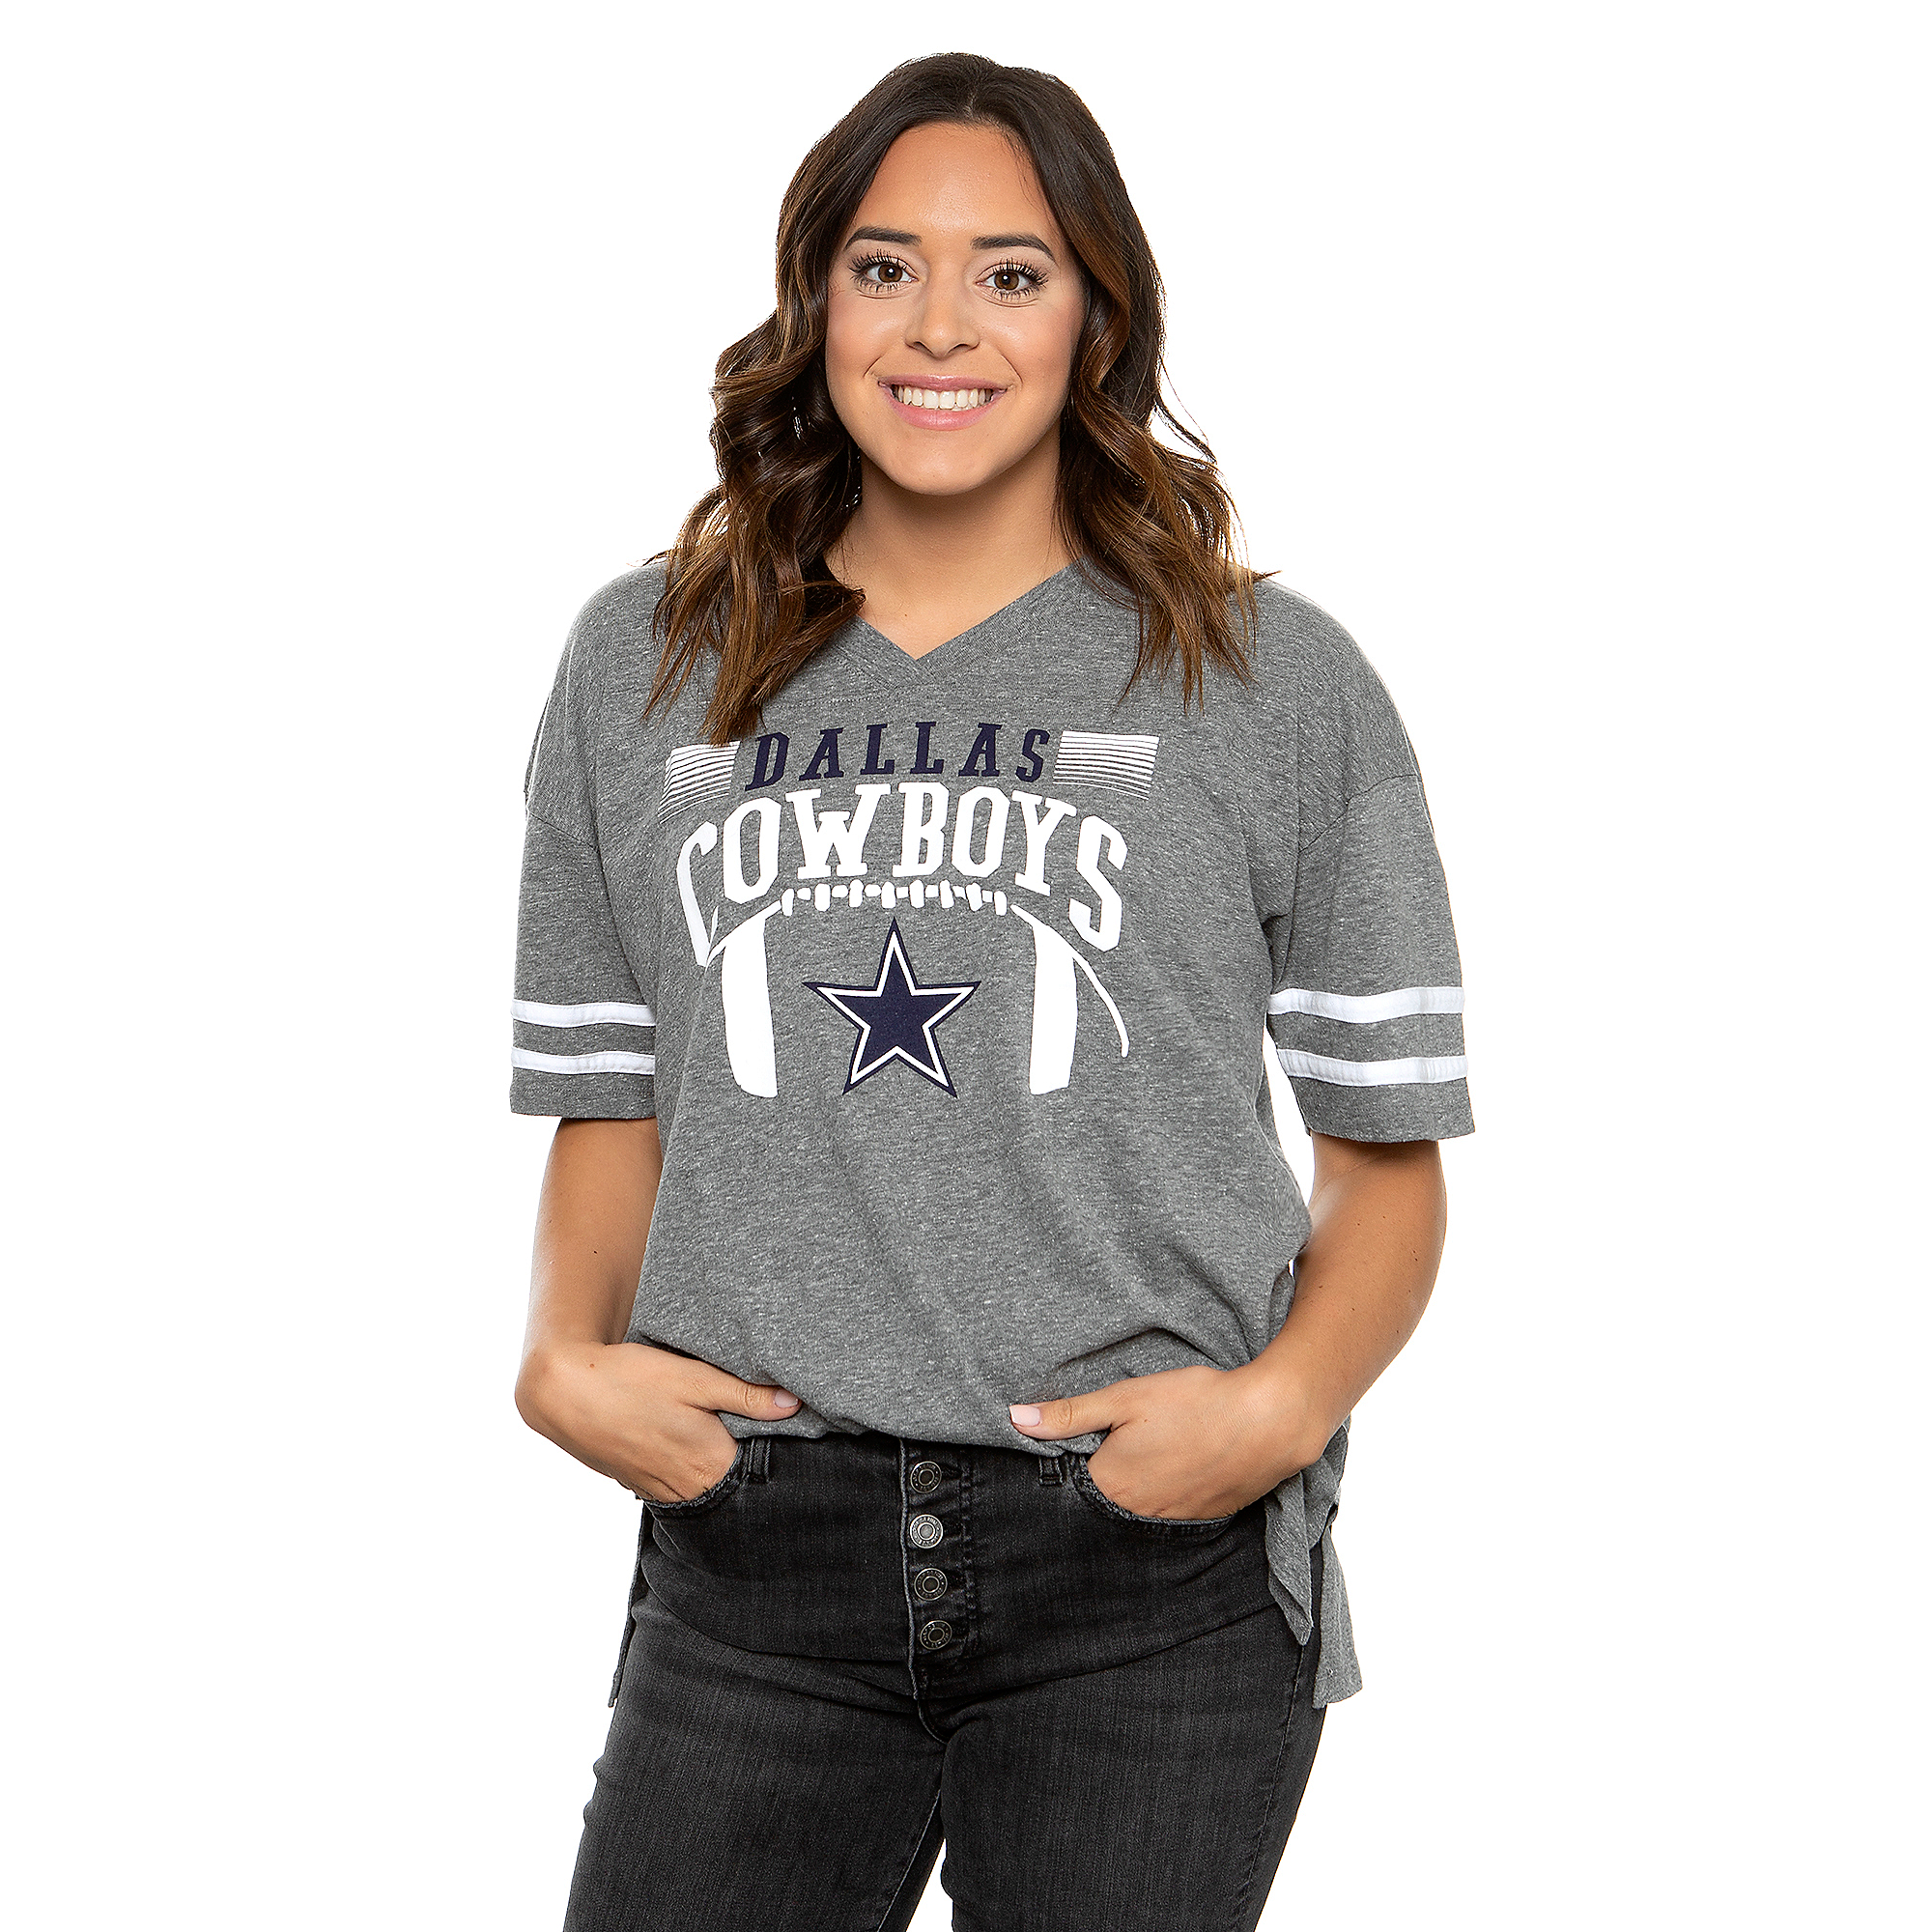 Dallas Cowboys Lauren James Womens Retro Jersey T-Shirt